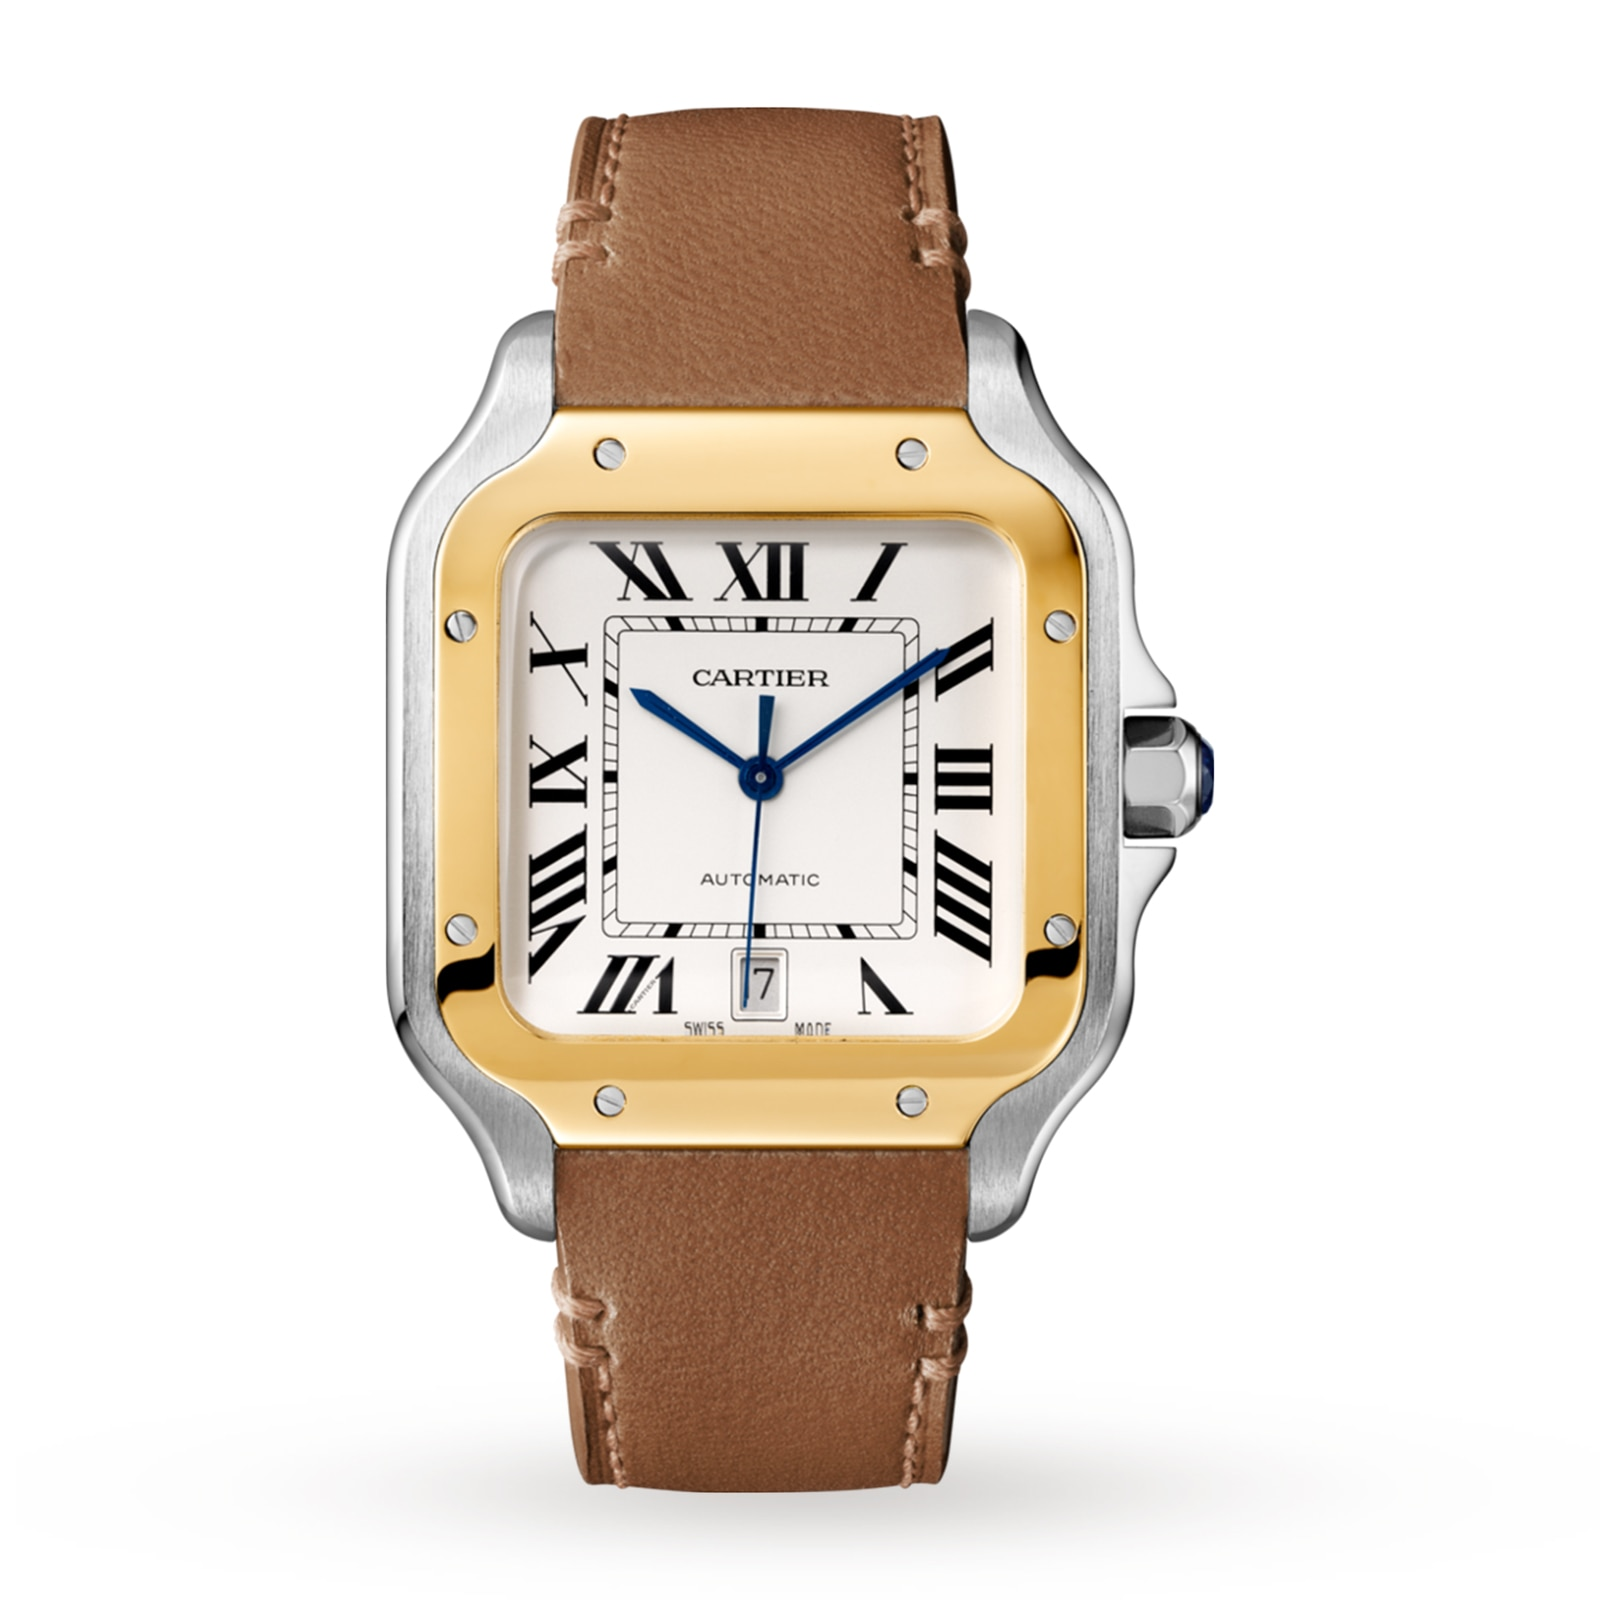 Cartier Santos de Cartier watch, Large model, automatic, gold and steel, two interchangeable straps